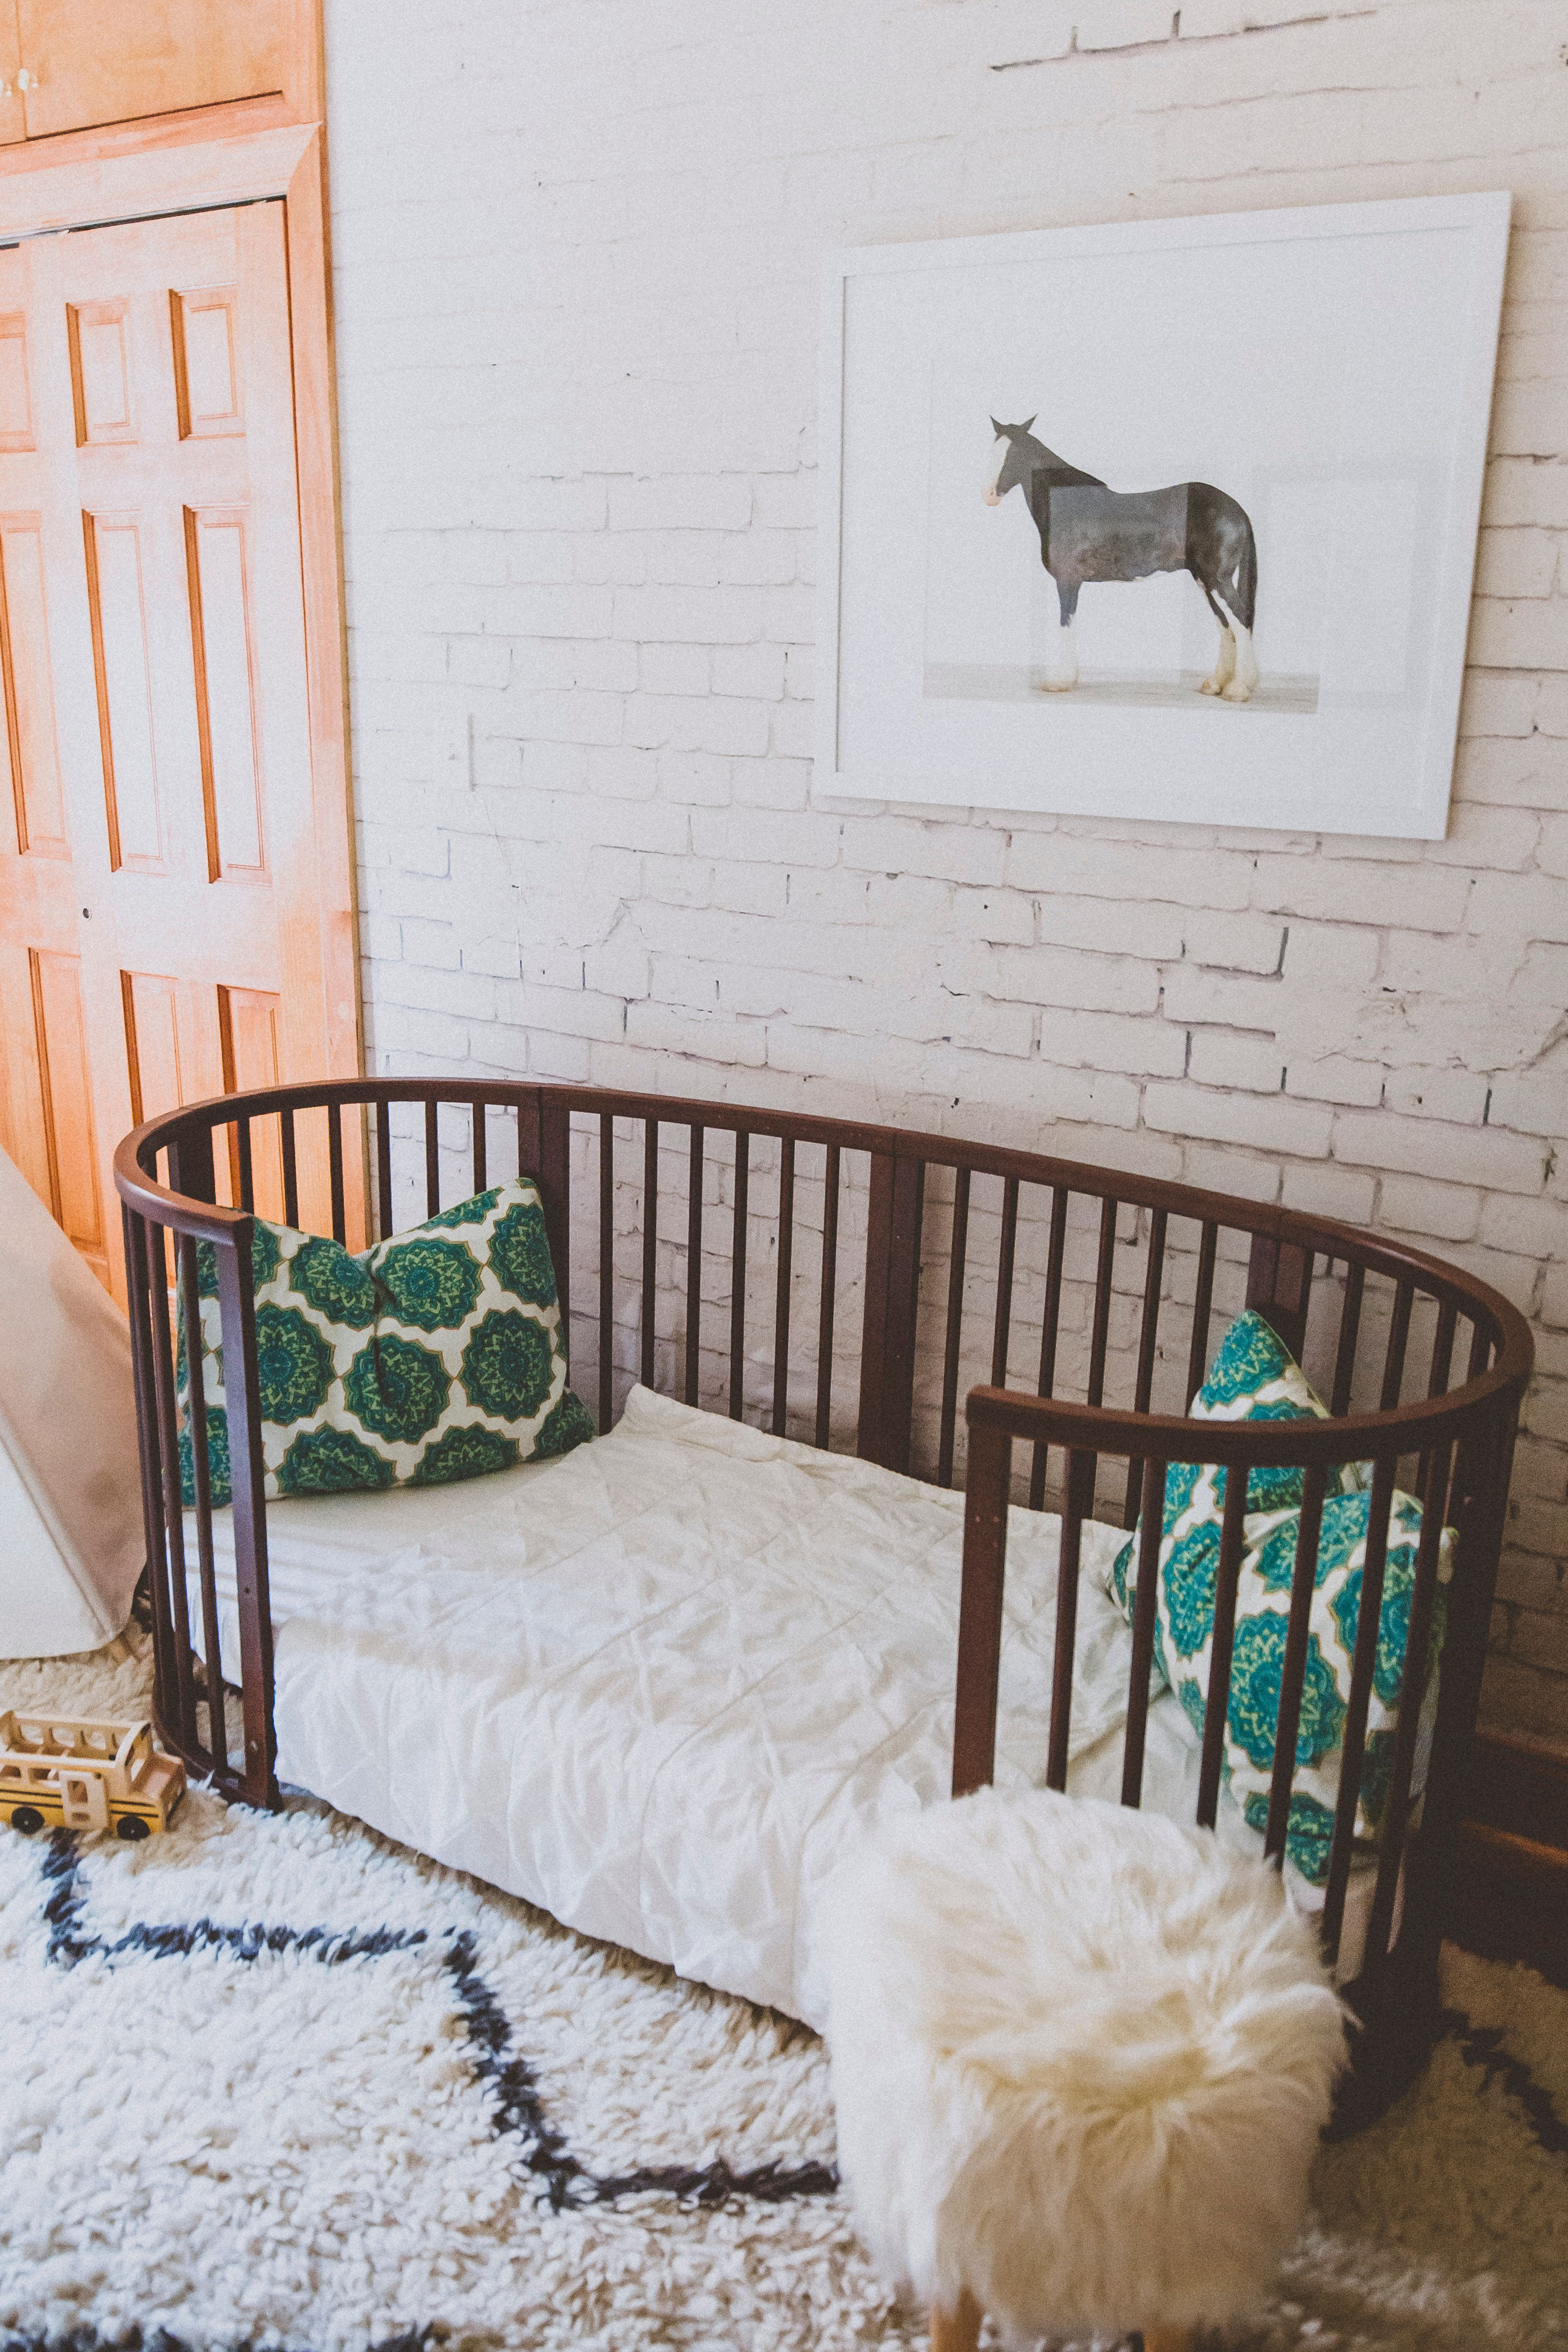 mini crib toddler bed on stokke sleepi 4 in 1 convertible crib grows with baby from nursery to kids room baby nursery kids bedroom toddler bed pinterest